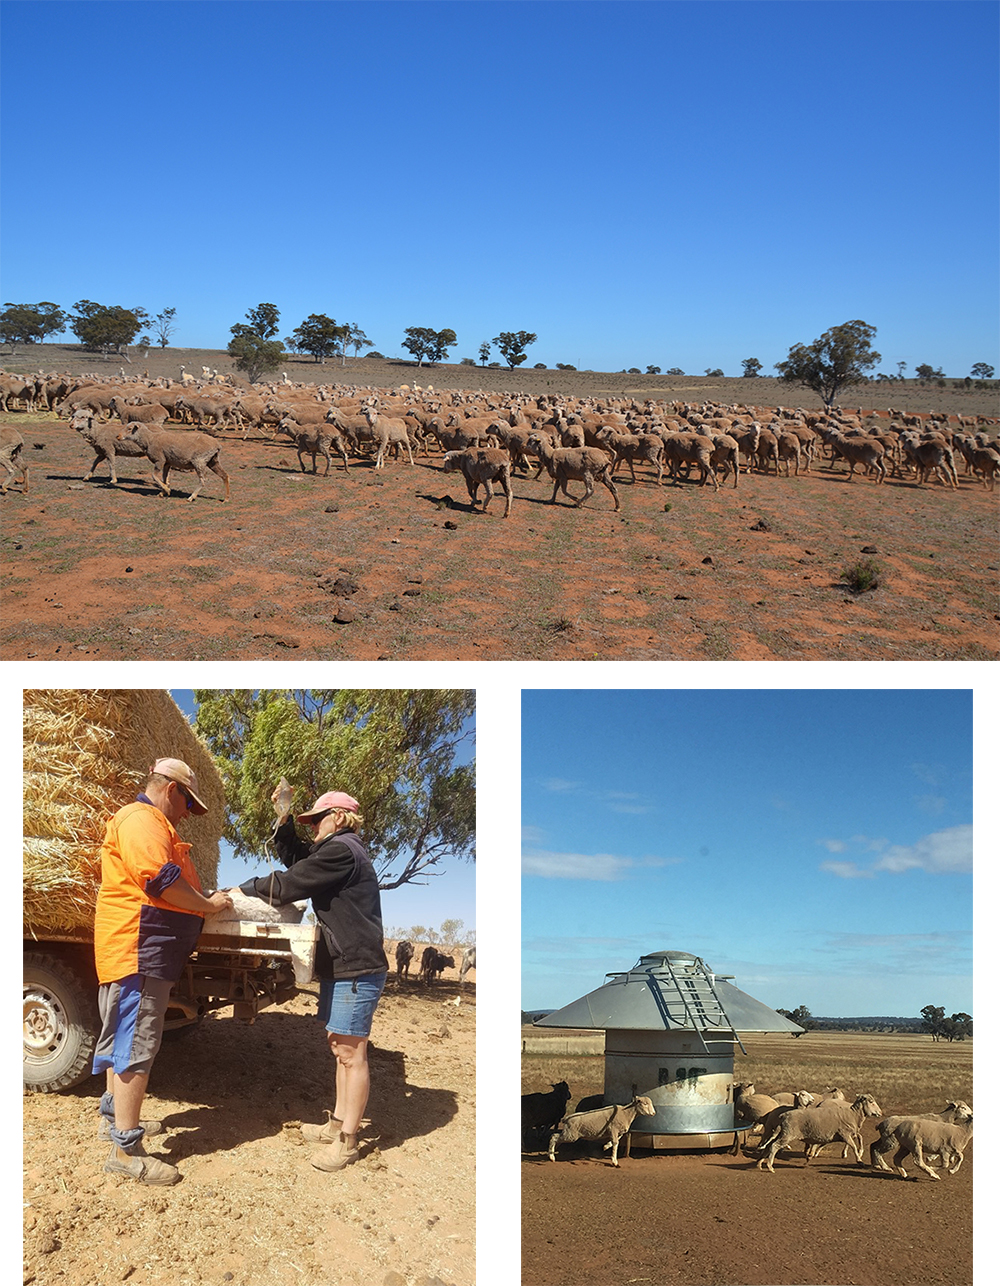 Three images of drought: a mob of sheep in a very dry paddock, two men with a ute full of hap, a sheep feeding station.